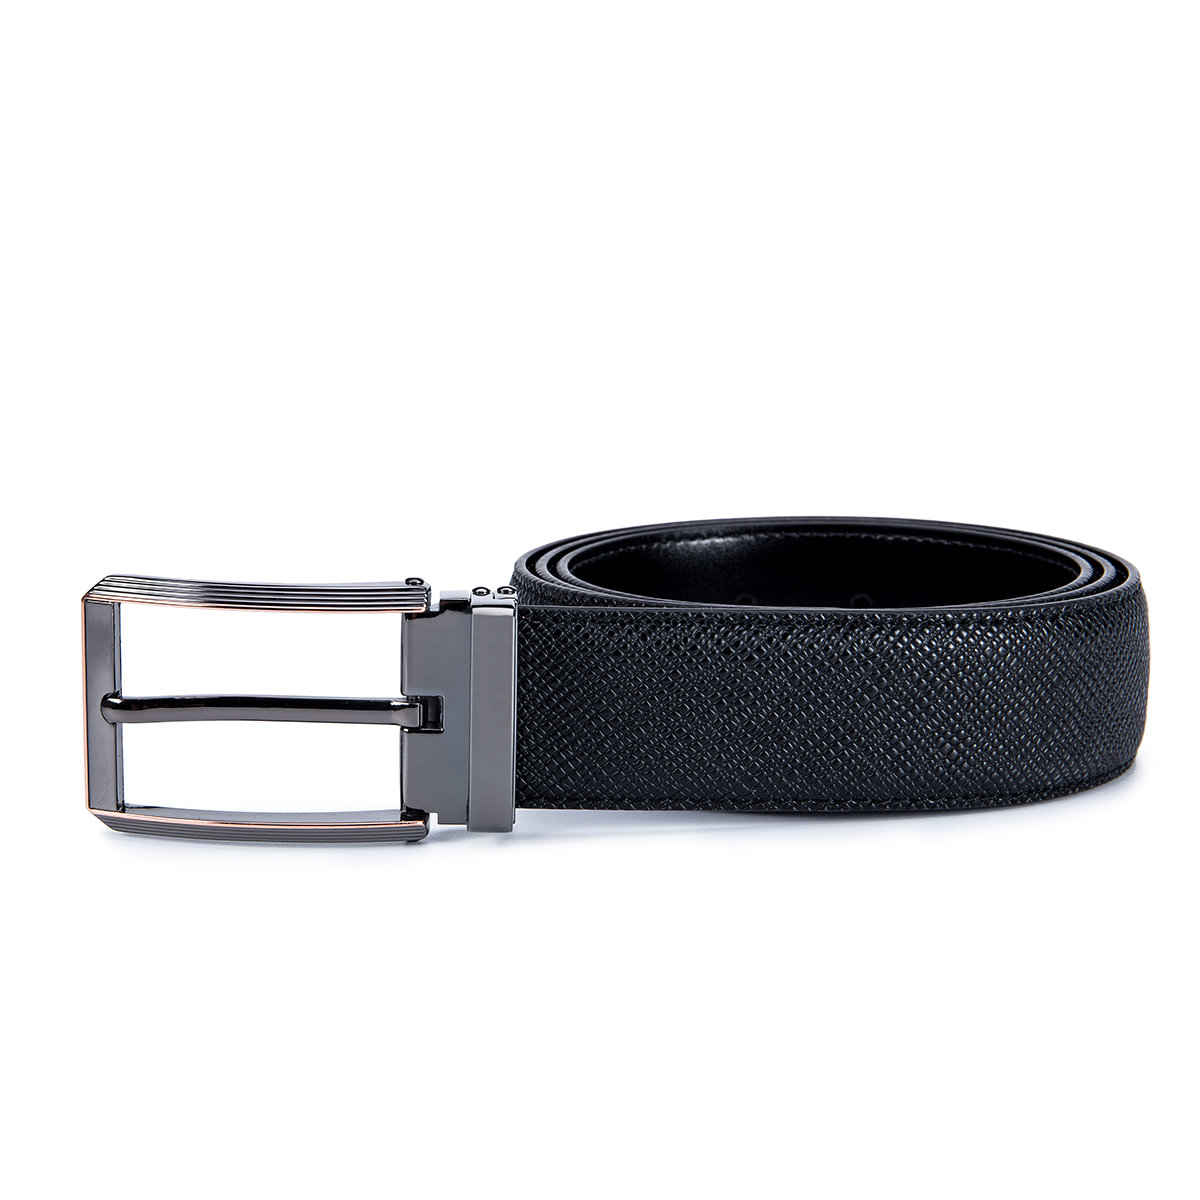 Deluxe Two Tones Saffiano Leather Belt